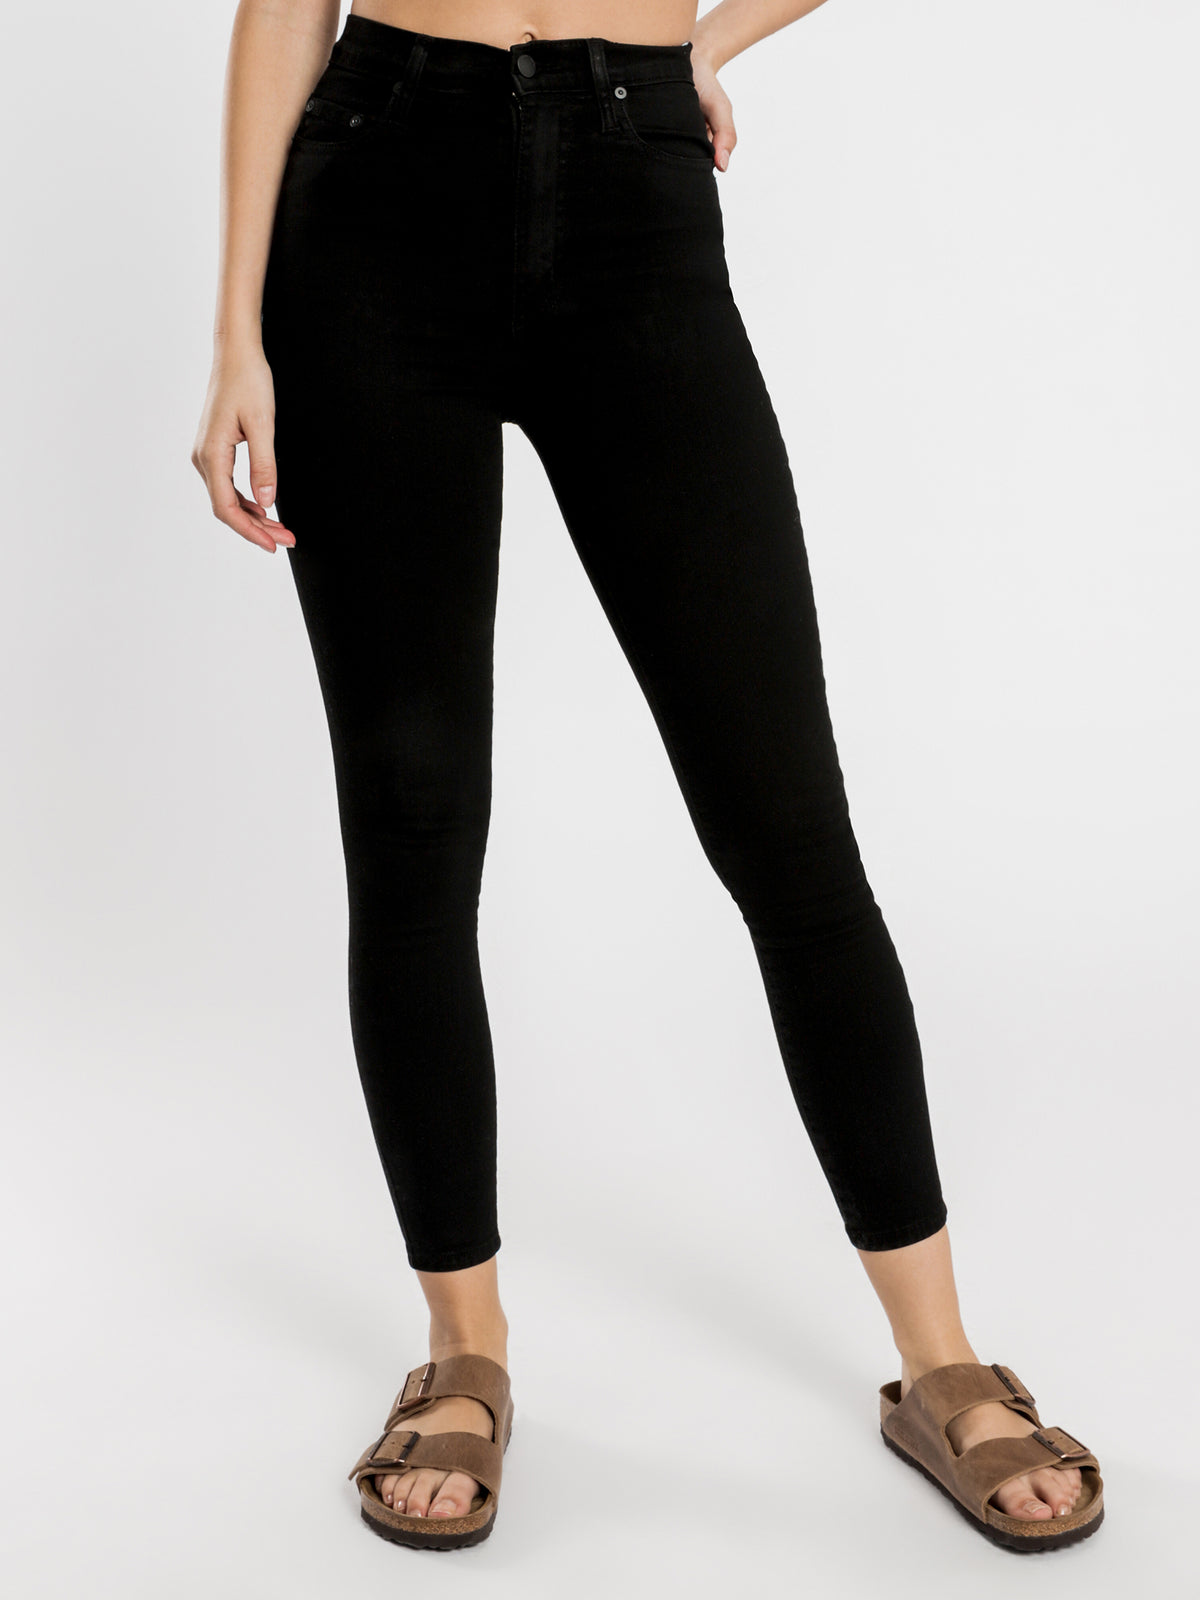 Siren Skinny Ankle Jeans in Power Black